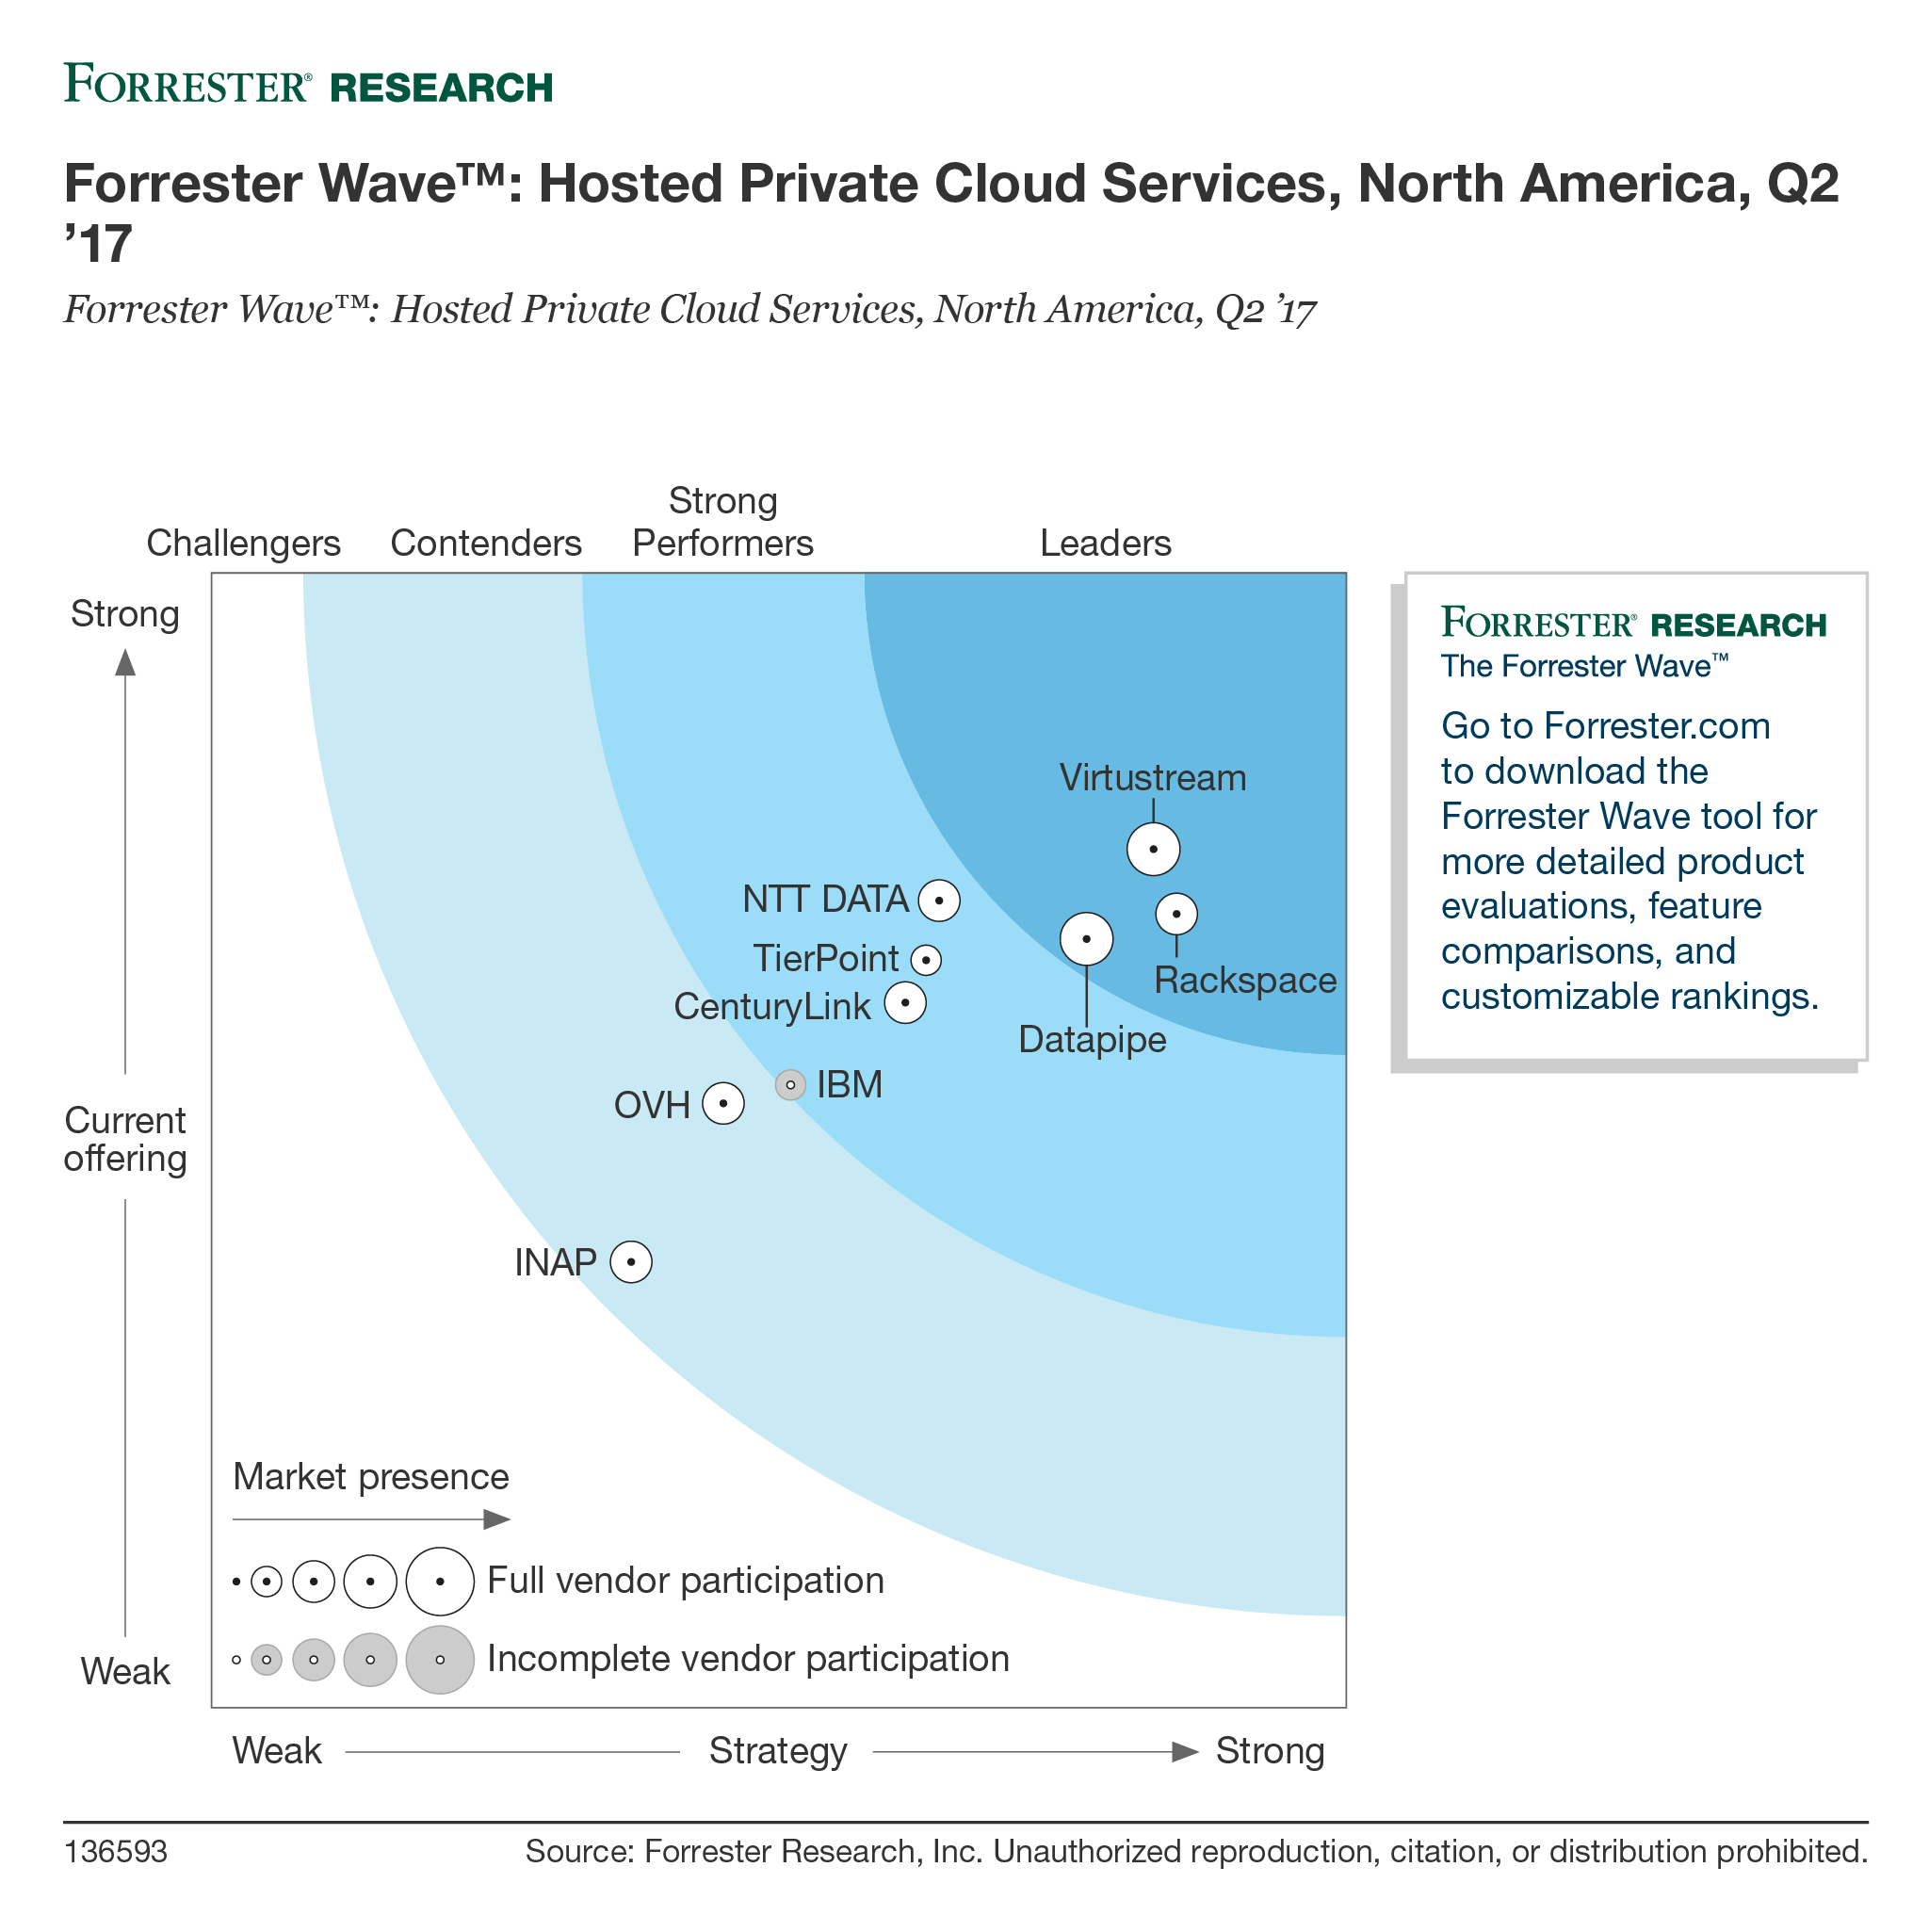 Forrester Wave: Rackspace is a Leader in Hosted Private Cloud Services, North America